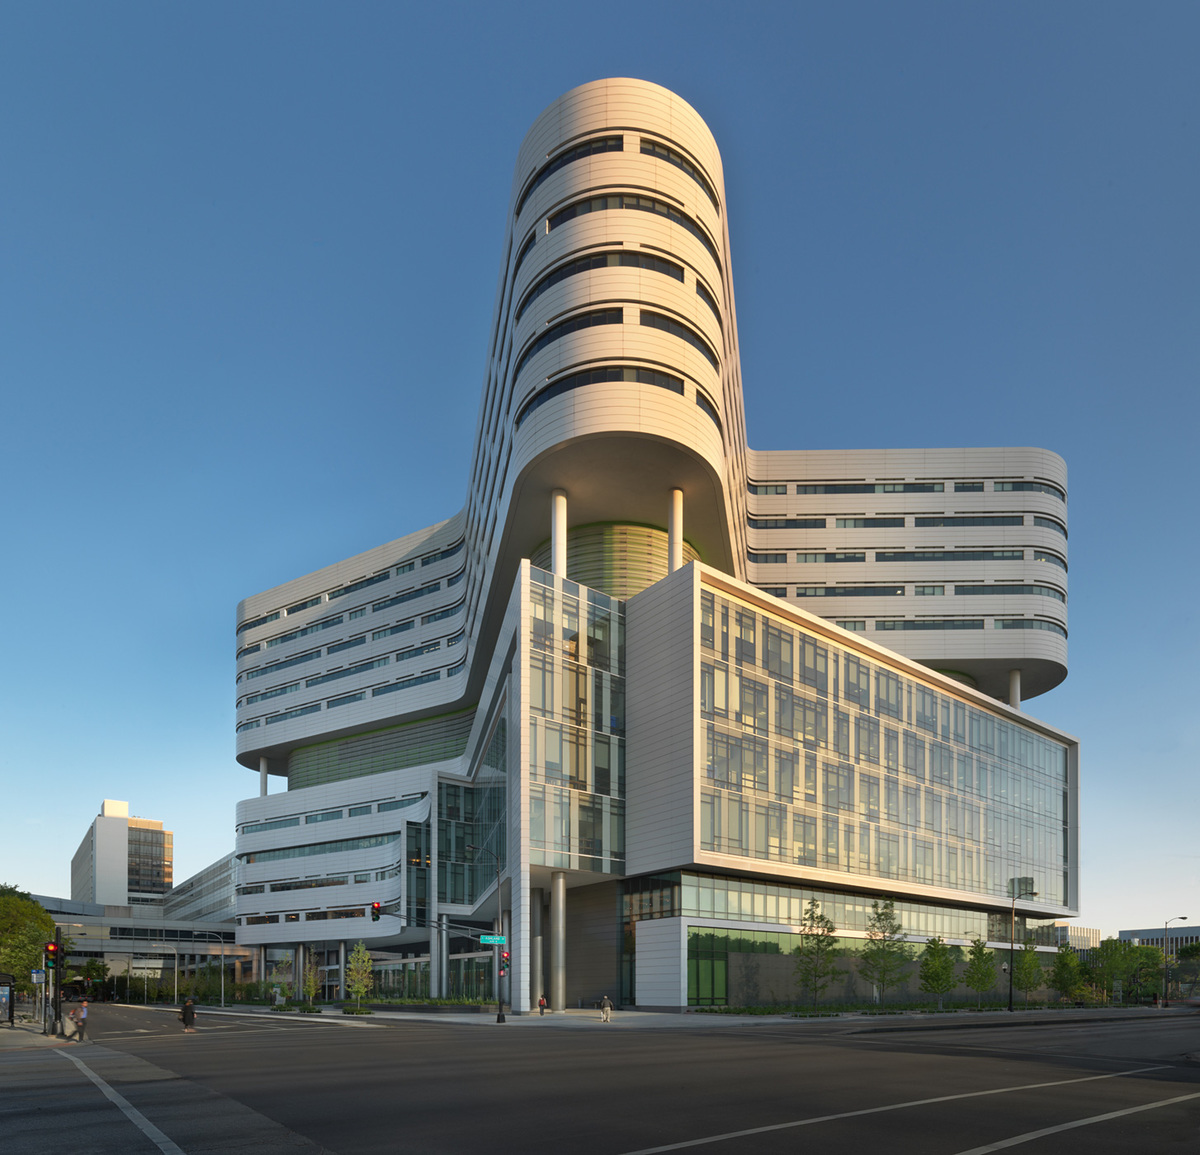 Shortlisted in the Health Category: Rush University Medical Center New Hospital Tower in the United States by Perkins+Will (Photo courtesy of World Architecture Festival)